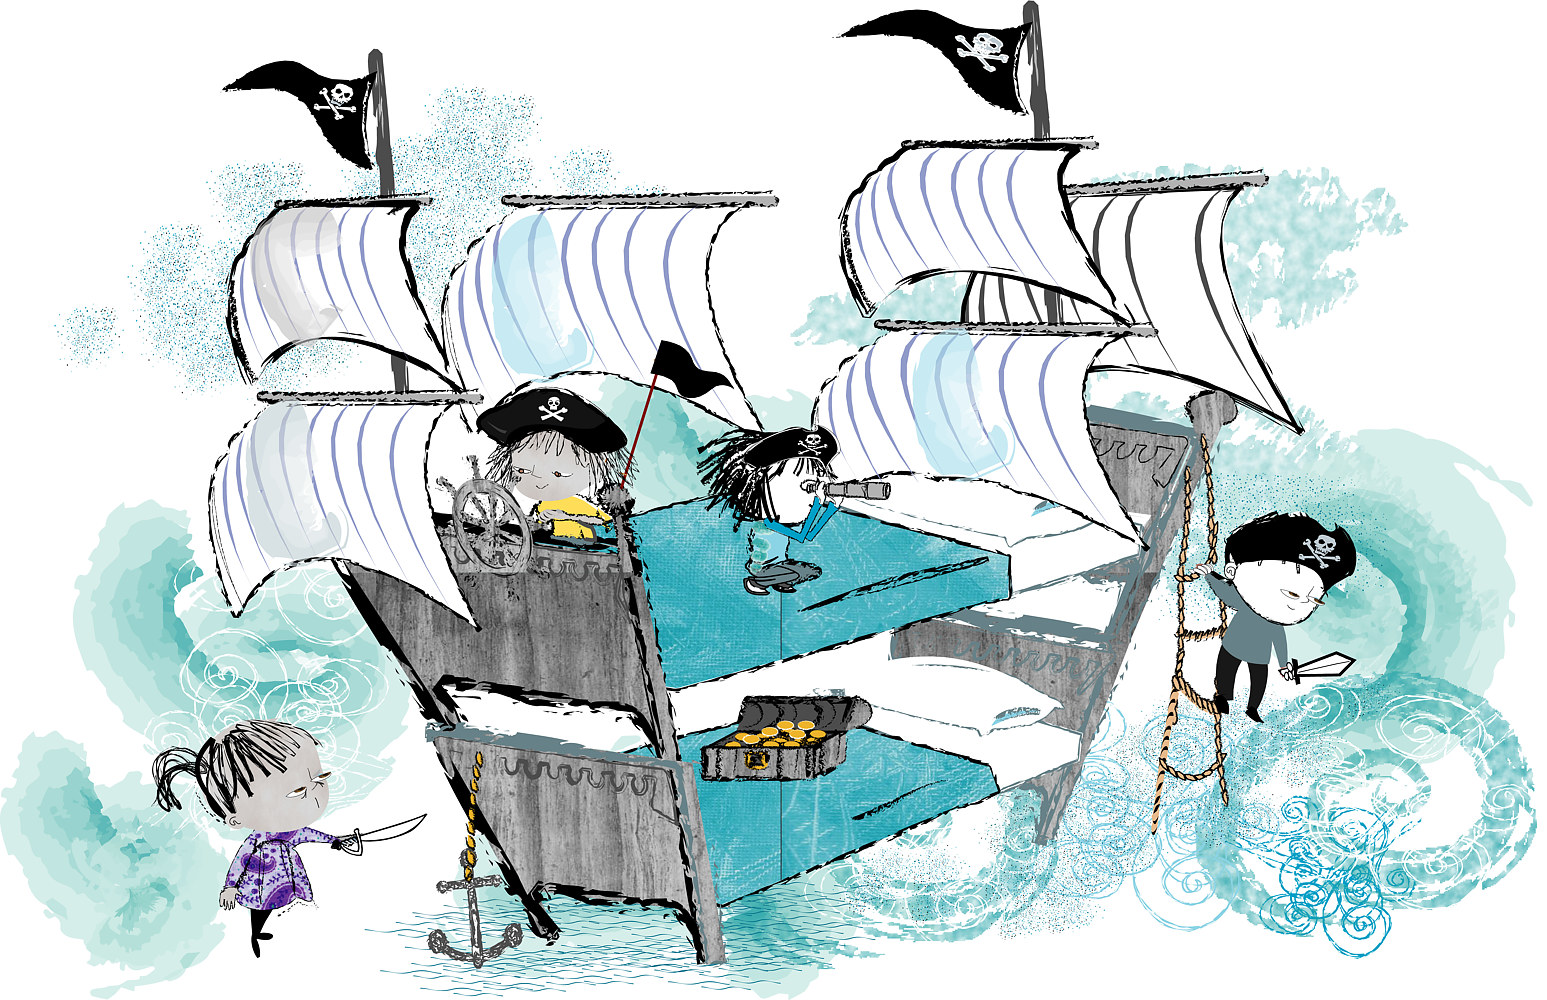 Bunk Pirates by Kathryn Howard